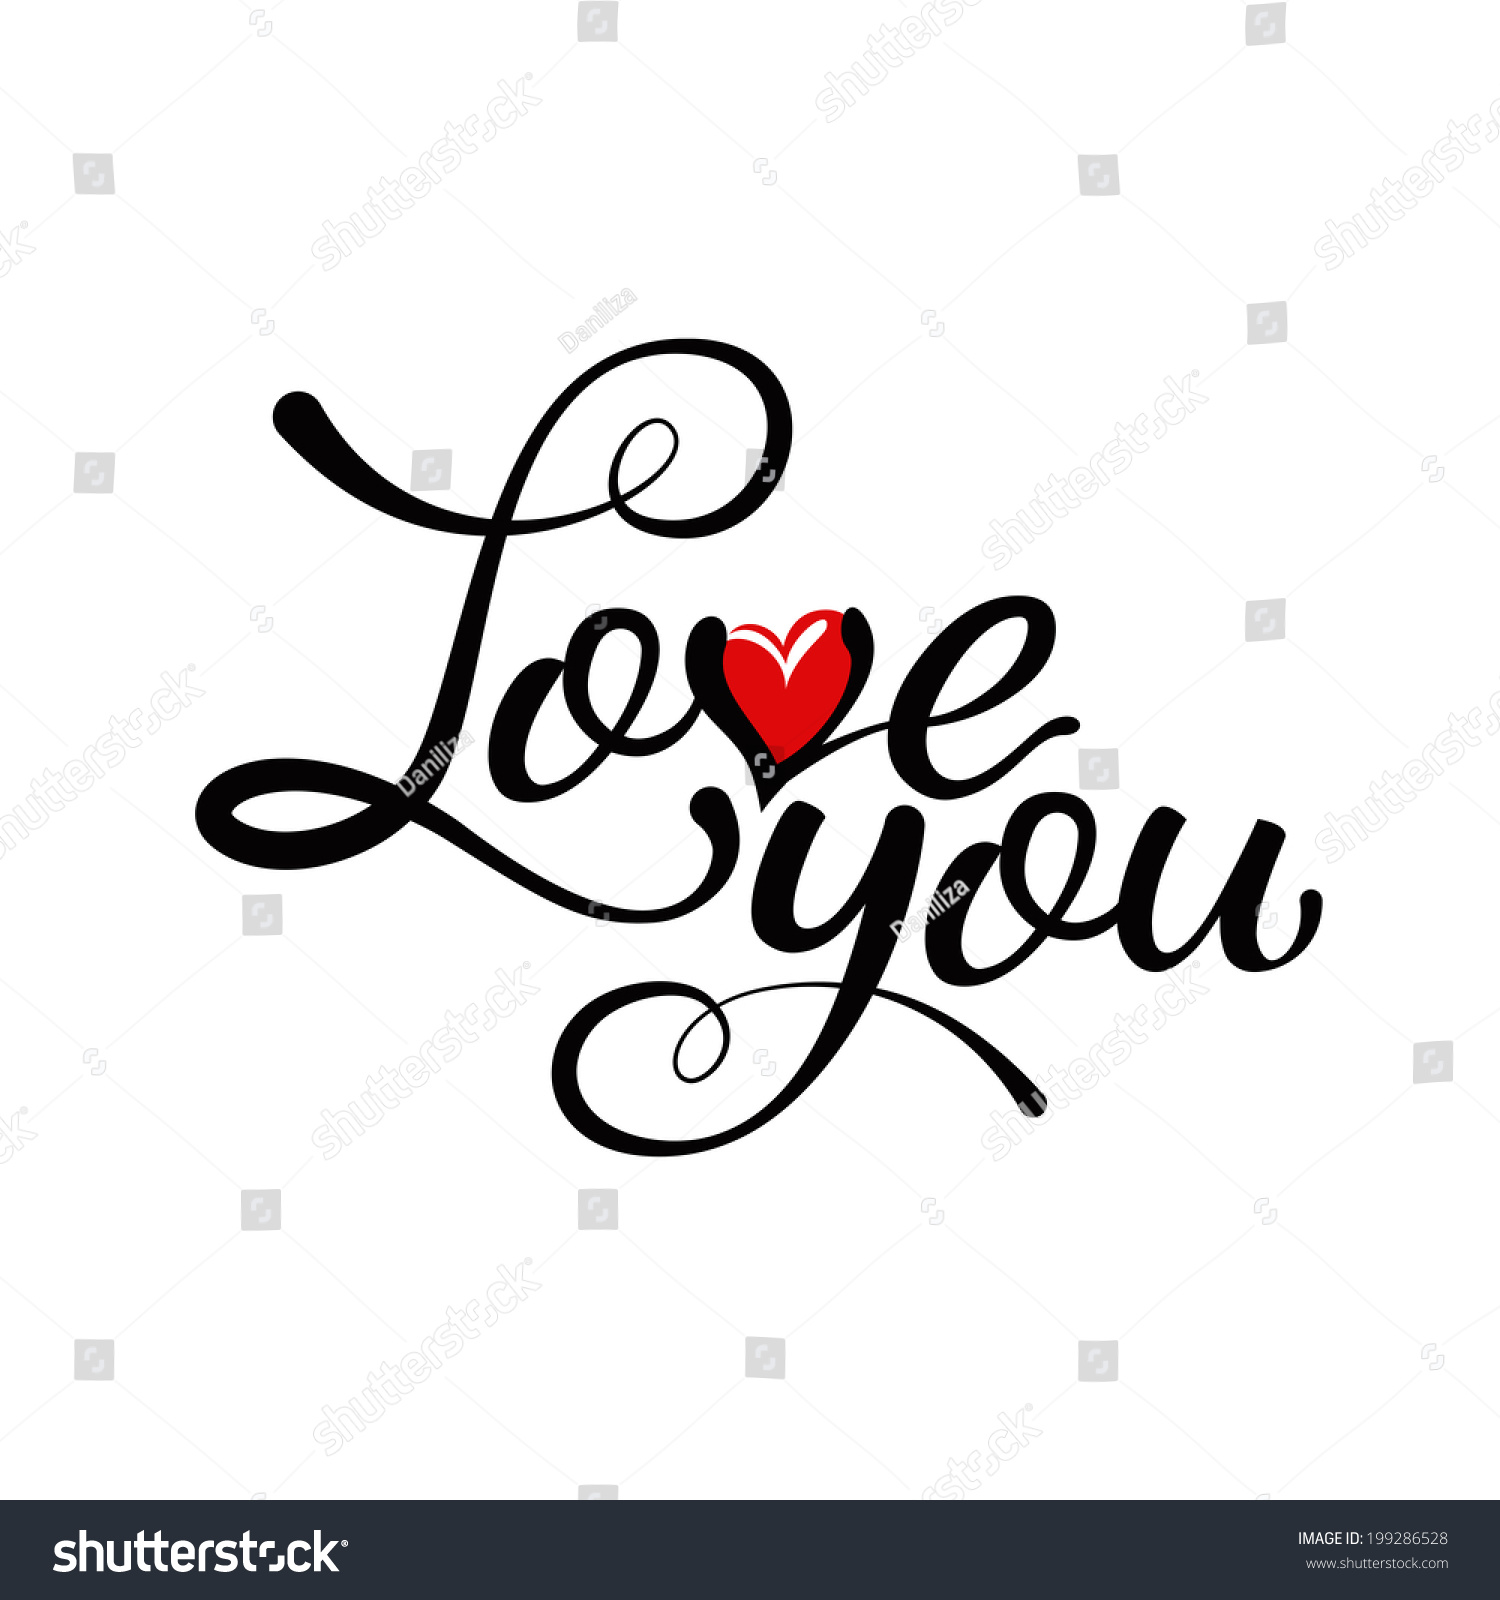 Love You Hand Lettering Handmade Calligraphy Stock Vector